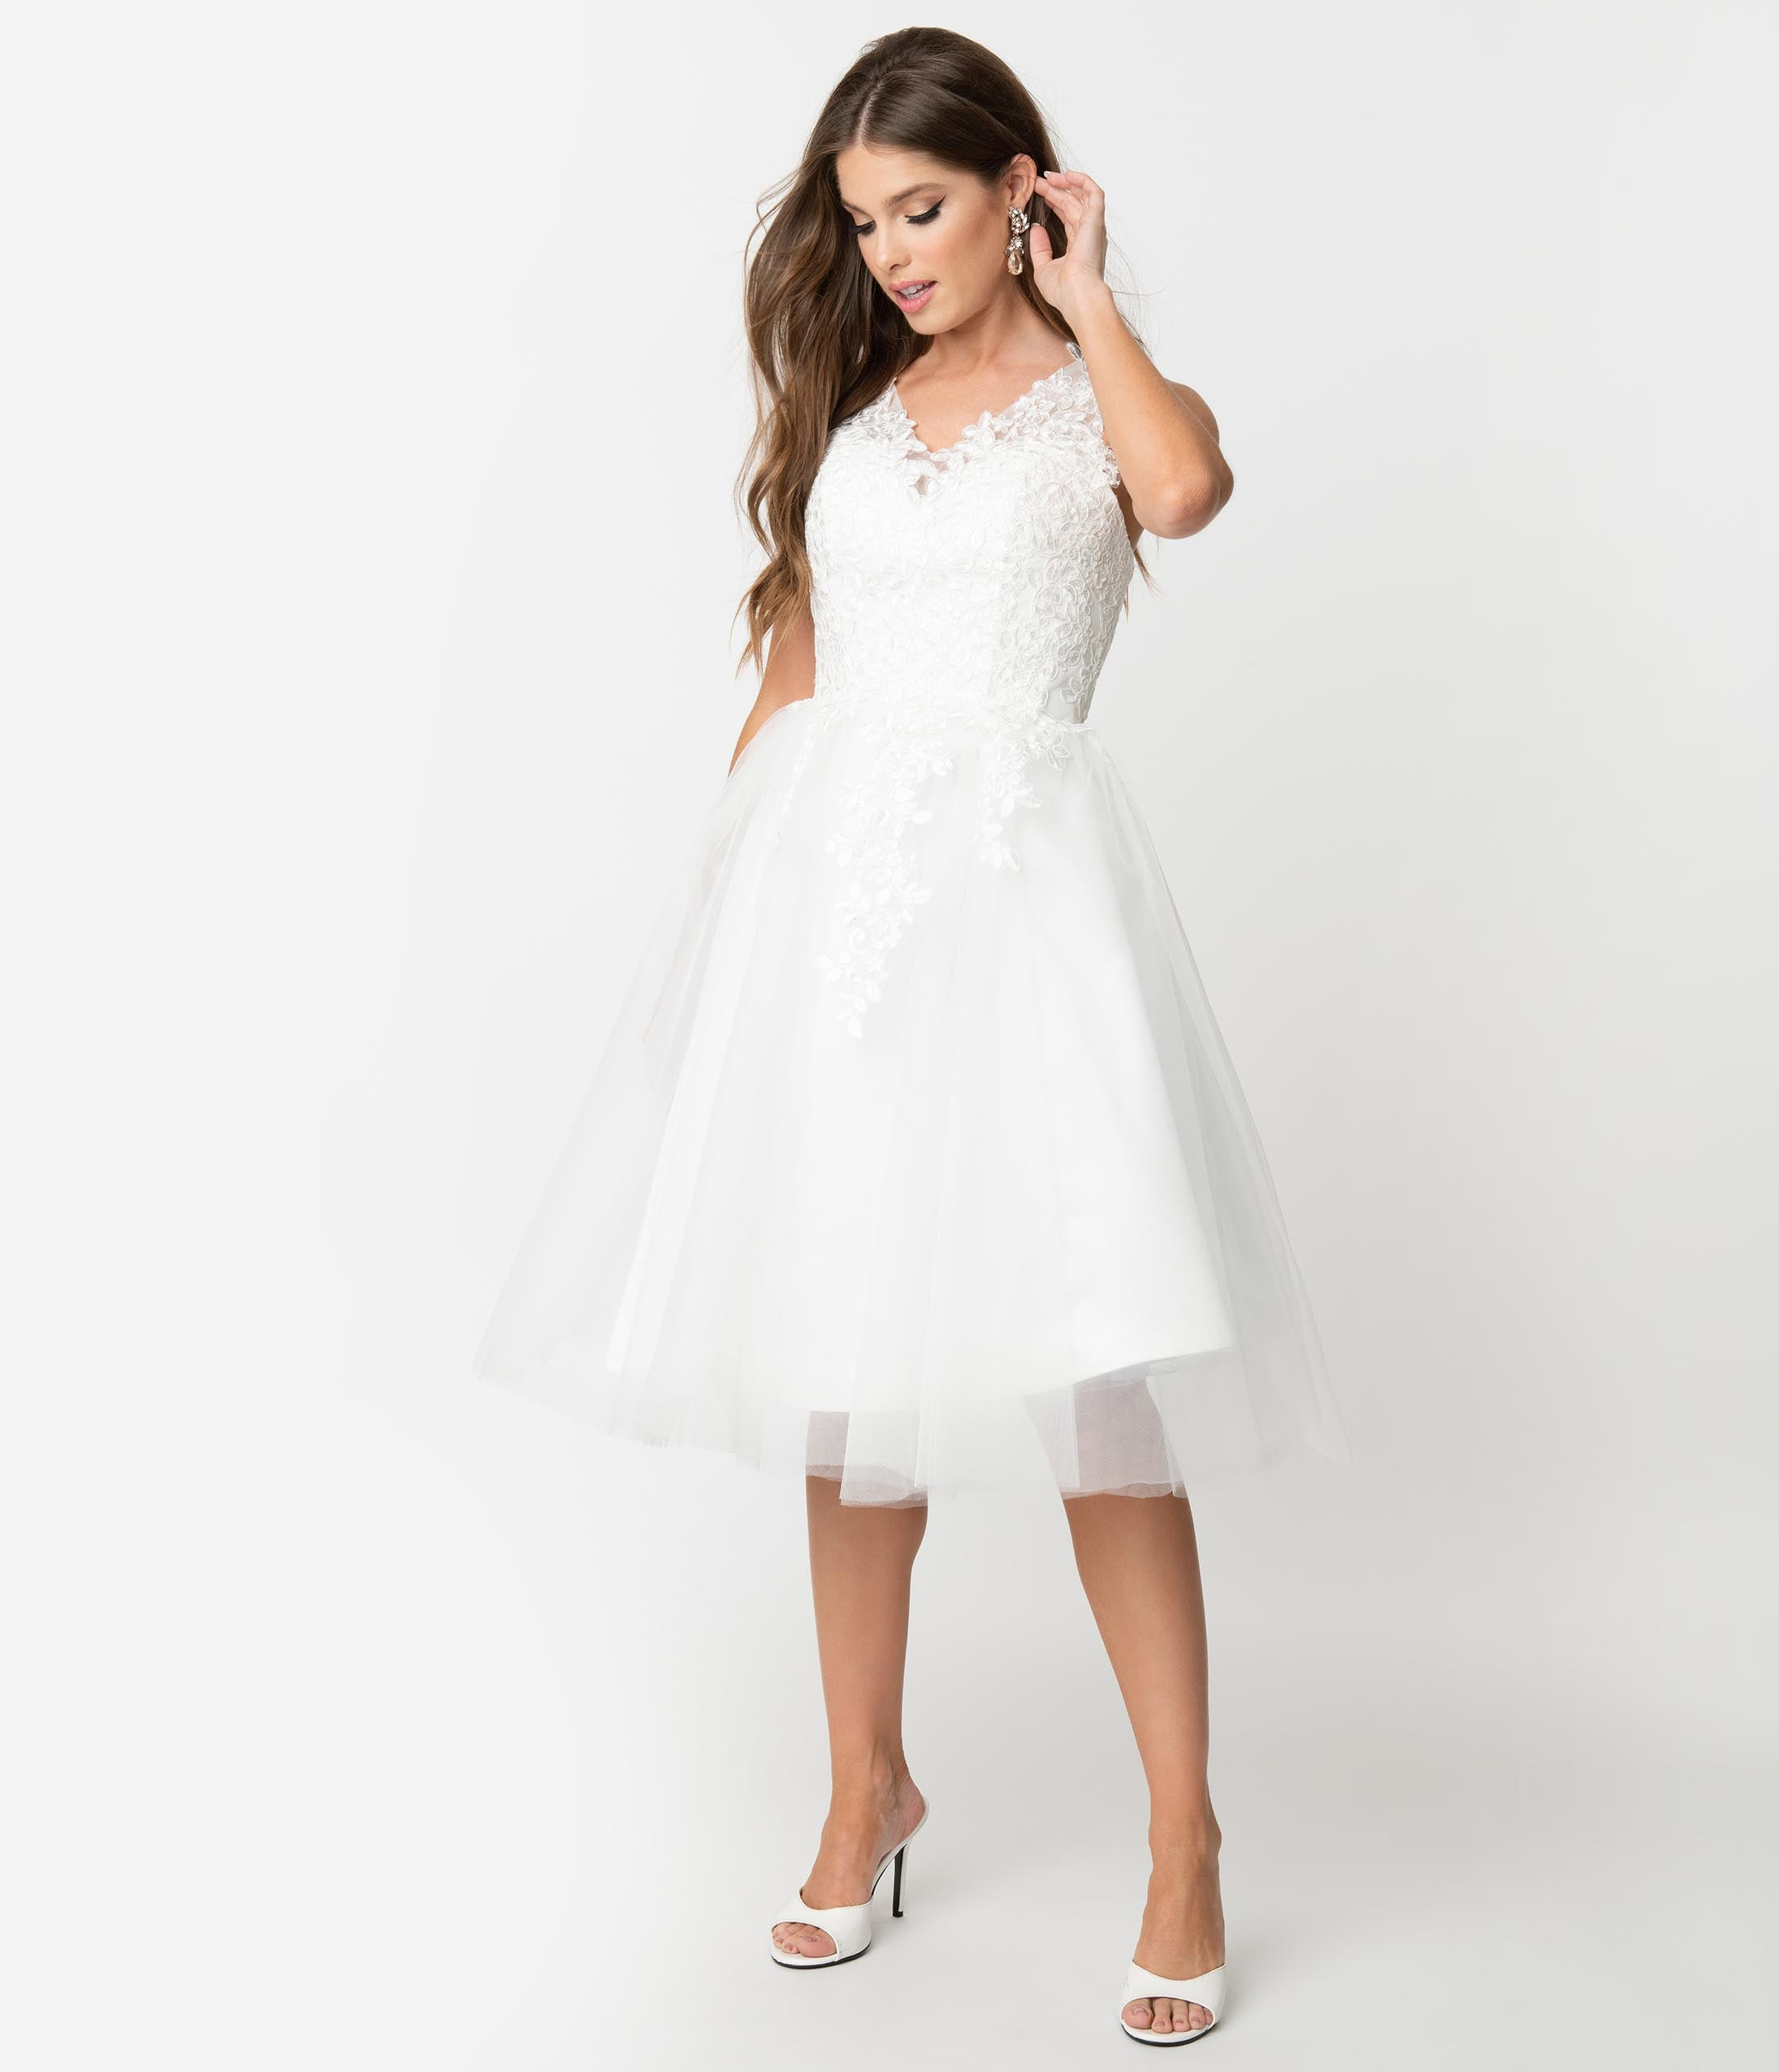 Wedding Dresses For Over 50s Uk: 50s Wedding Dress, 1950s Style Wedding Dresses, Rockabilly